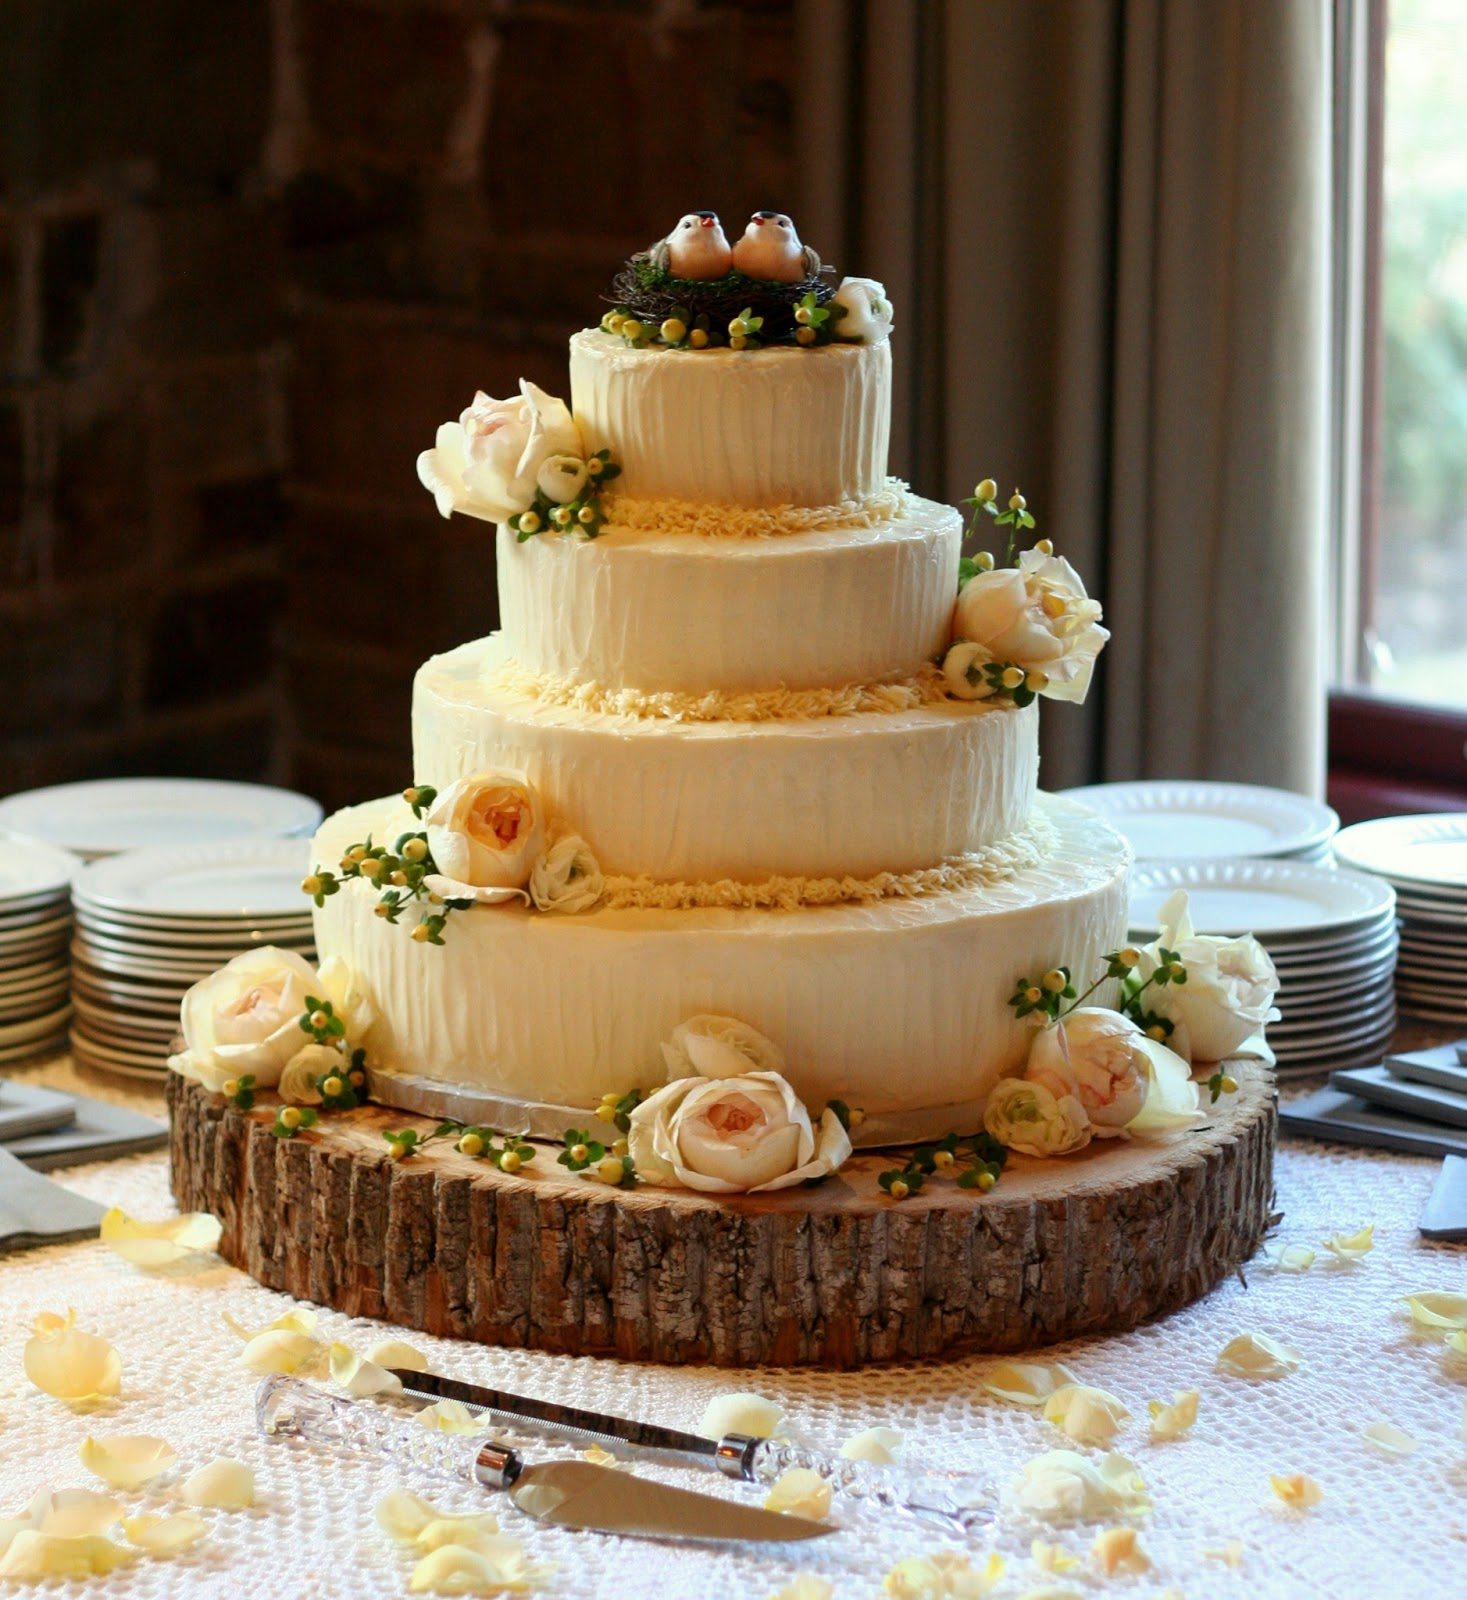 Cake Designs For Wedding : 6 Stunning Rustic Wedding Cake Ideas - Wedding Cakes